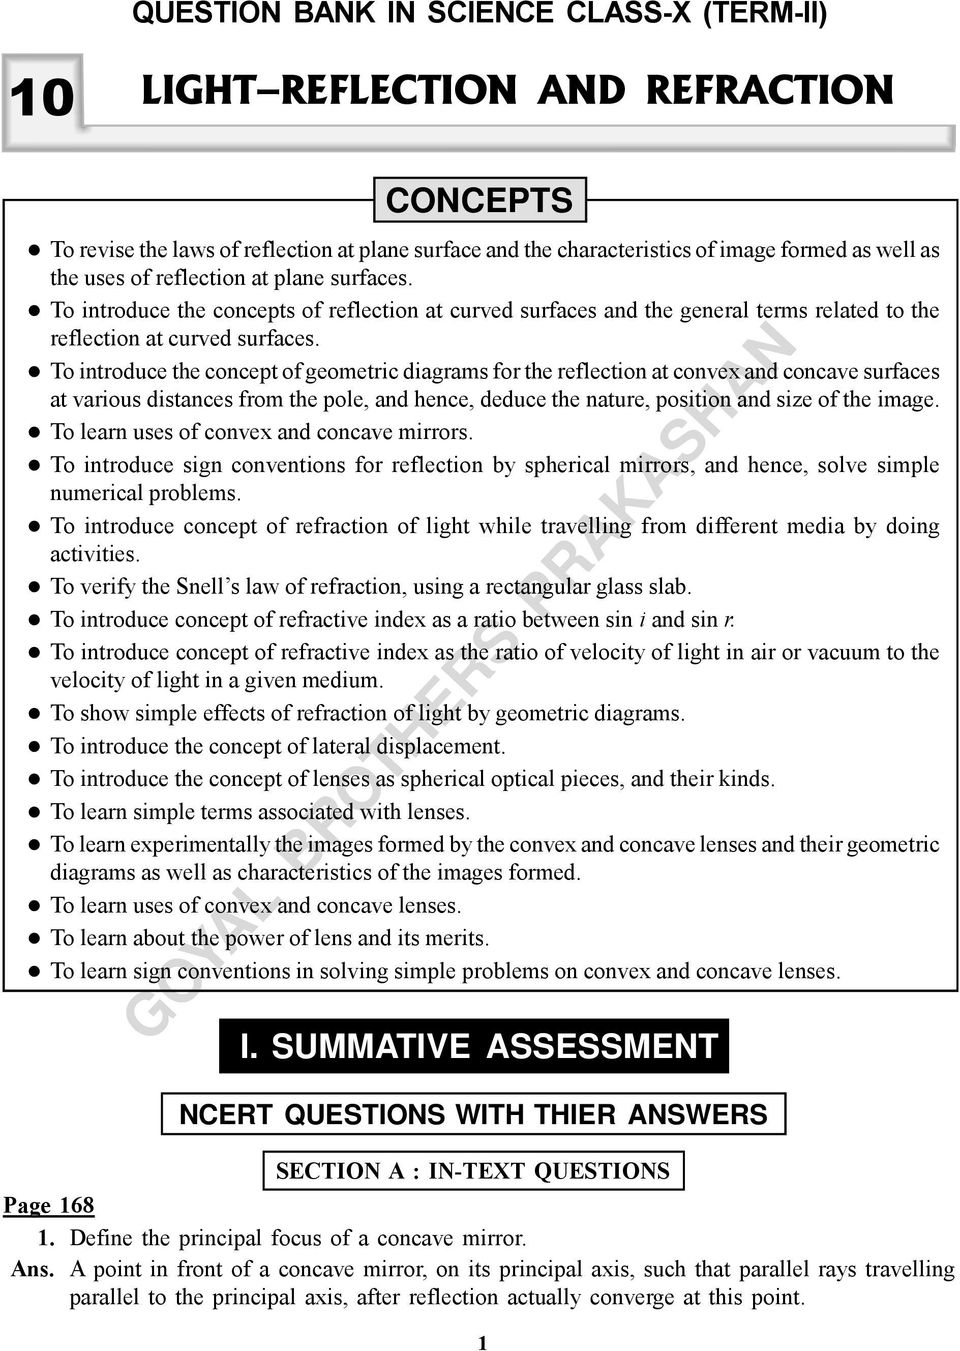 Expository Essay Thesis Statement Description My House Essay Zoo Essays About English Language also Good Thesis Statement Examples For Essays We Do Your Homework Josh Kwondike Bar Environmental Health Essay